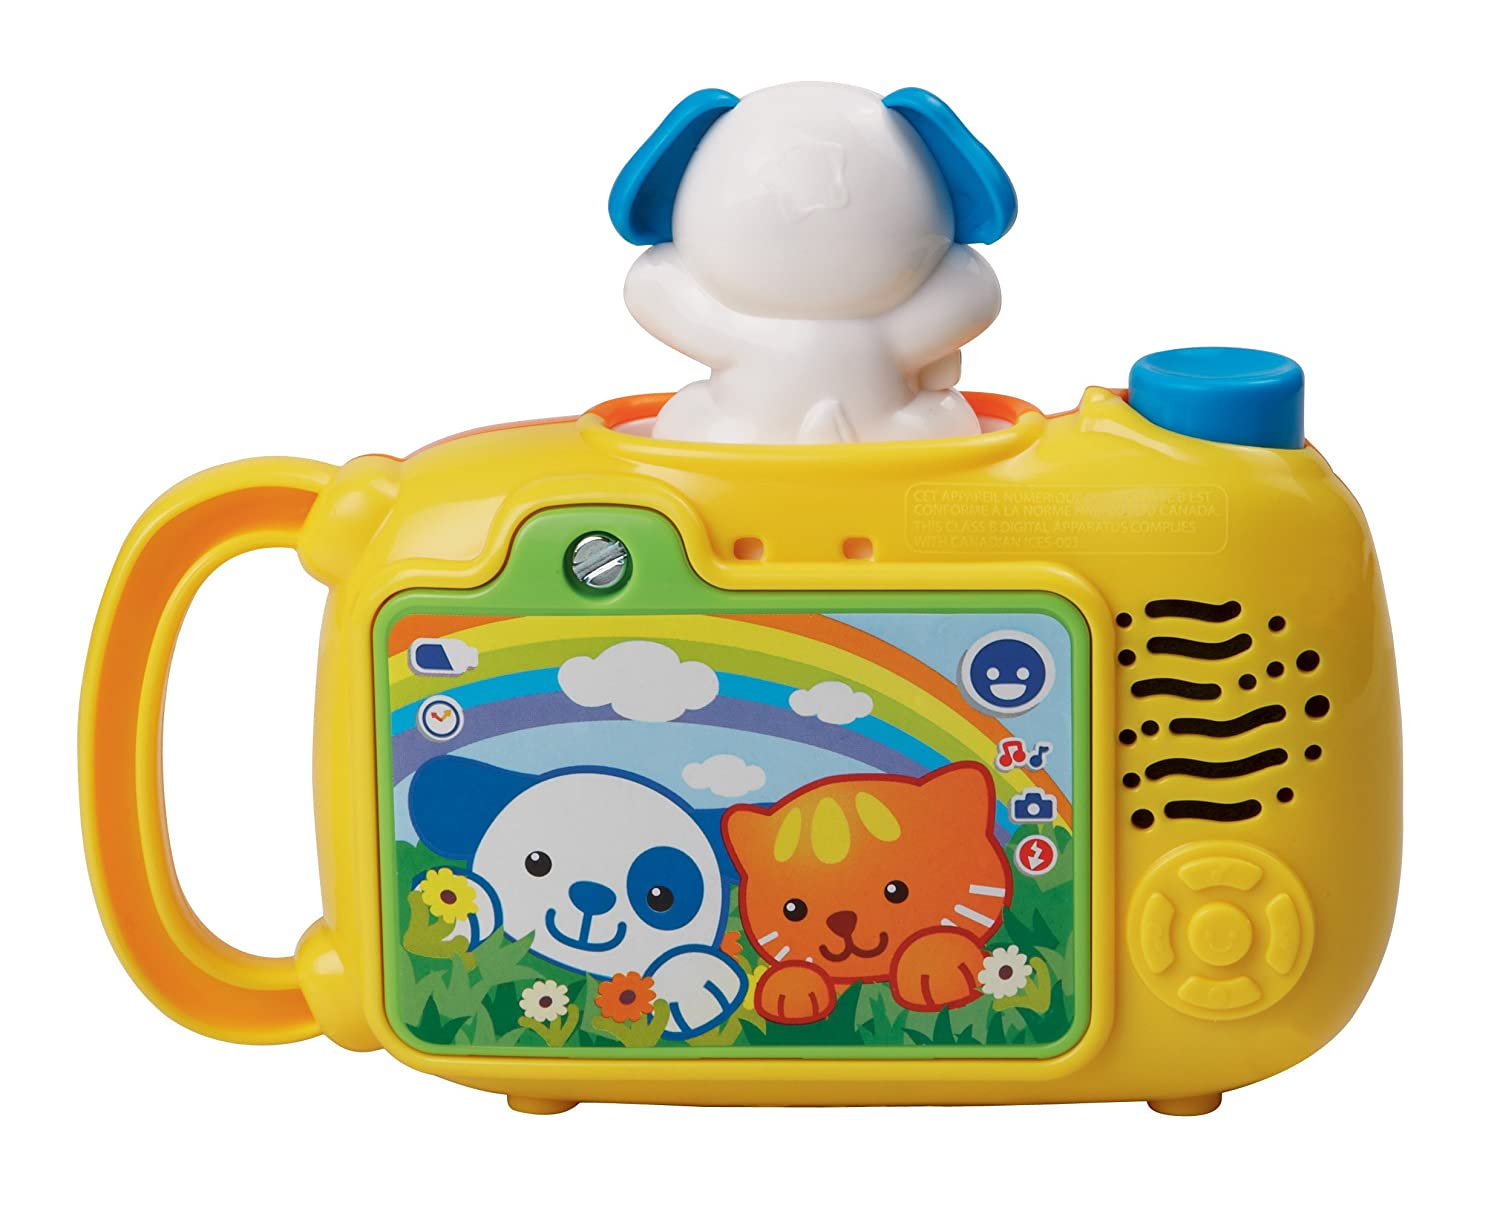 Amazon.com: VTech Snap and Surprise Camera: Toys & Games